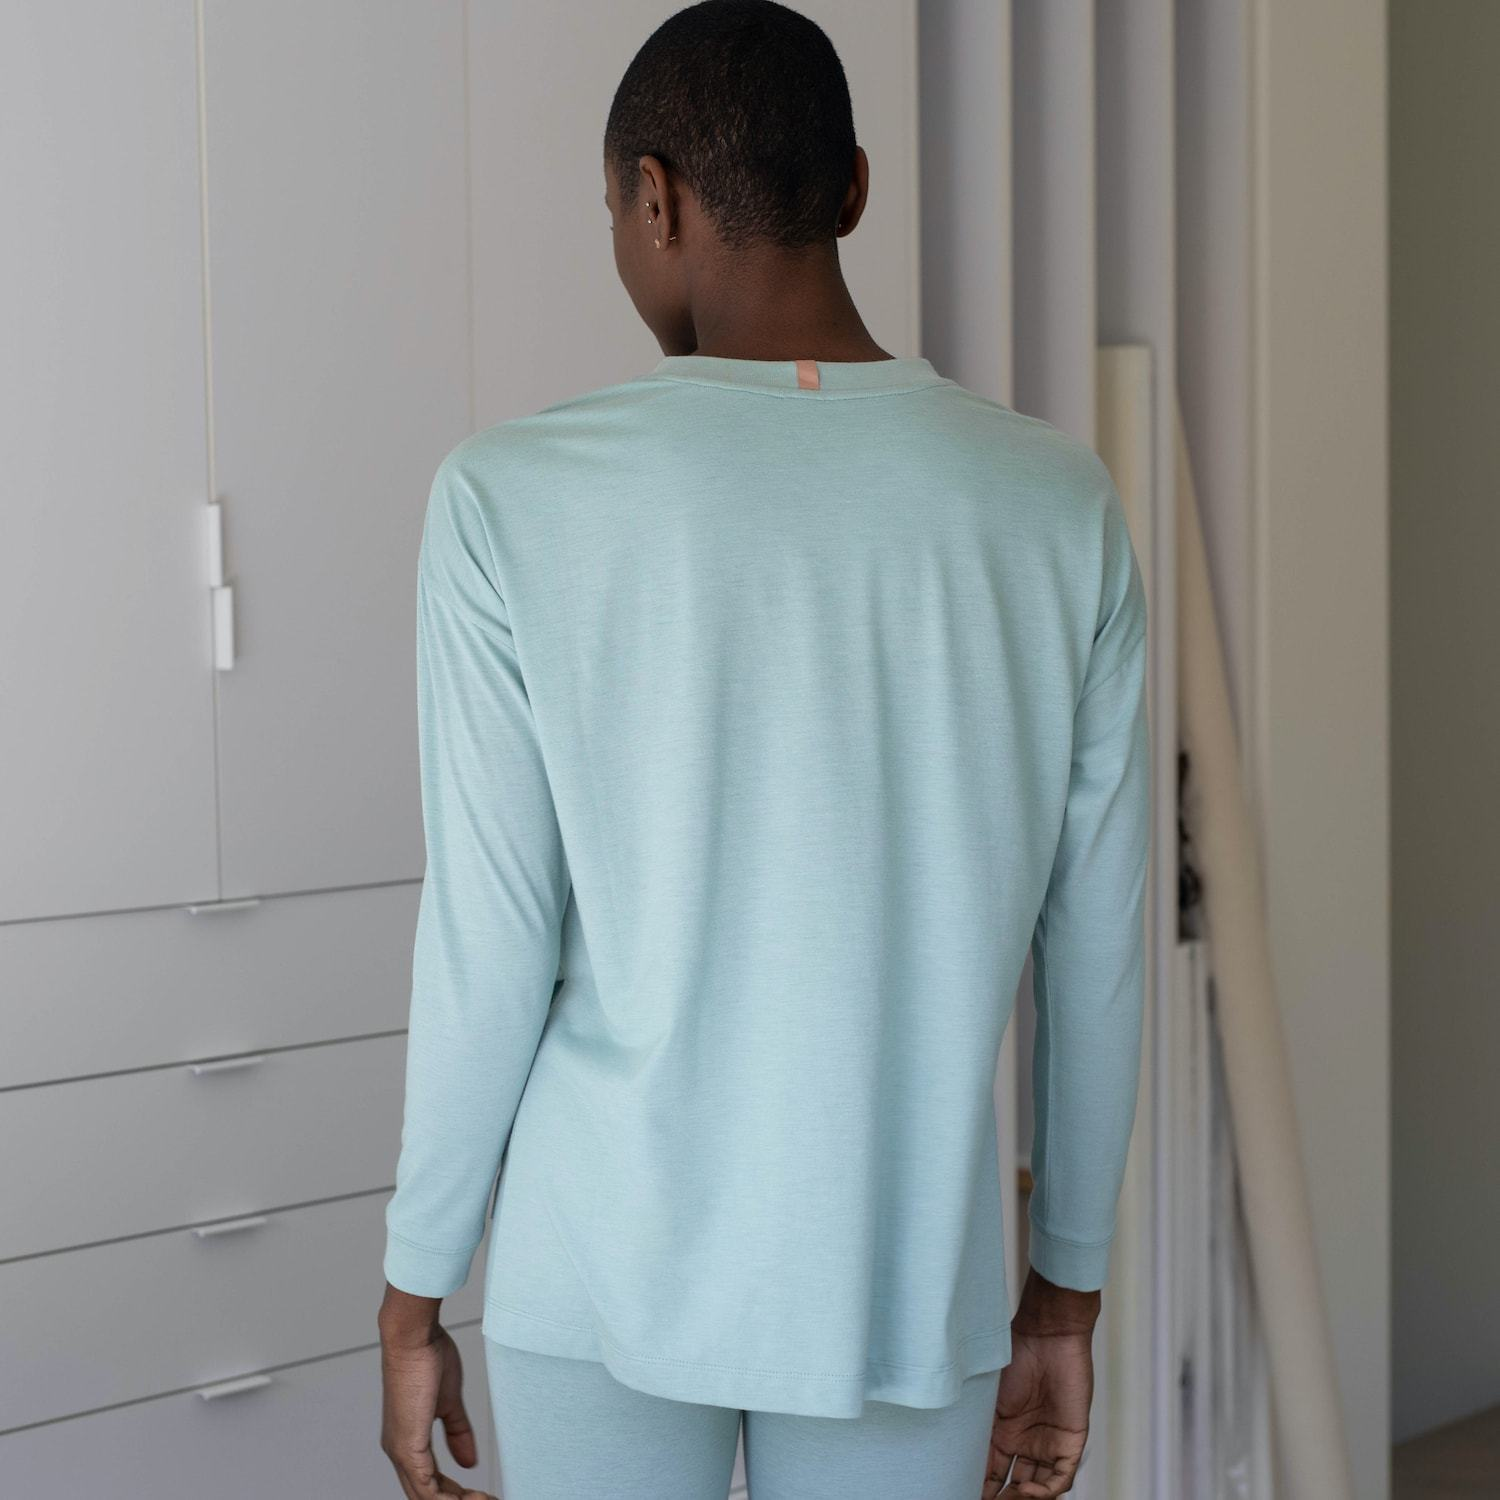 Lunya Sleepwear Long Sleeve Tee - #Aloe